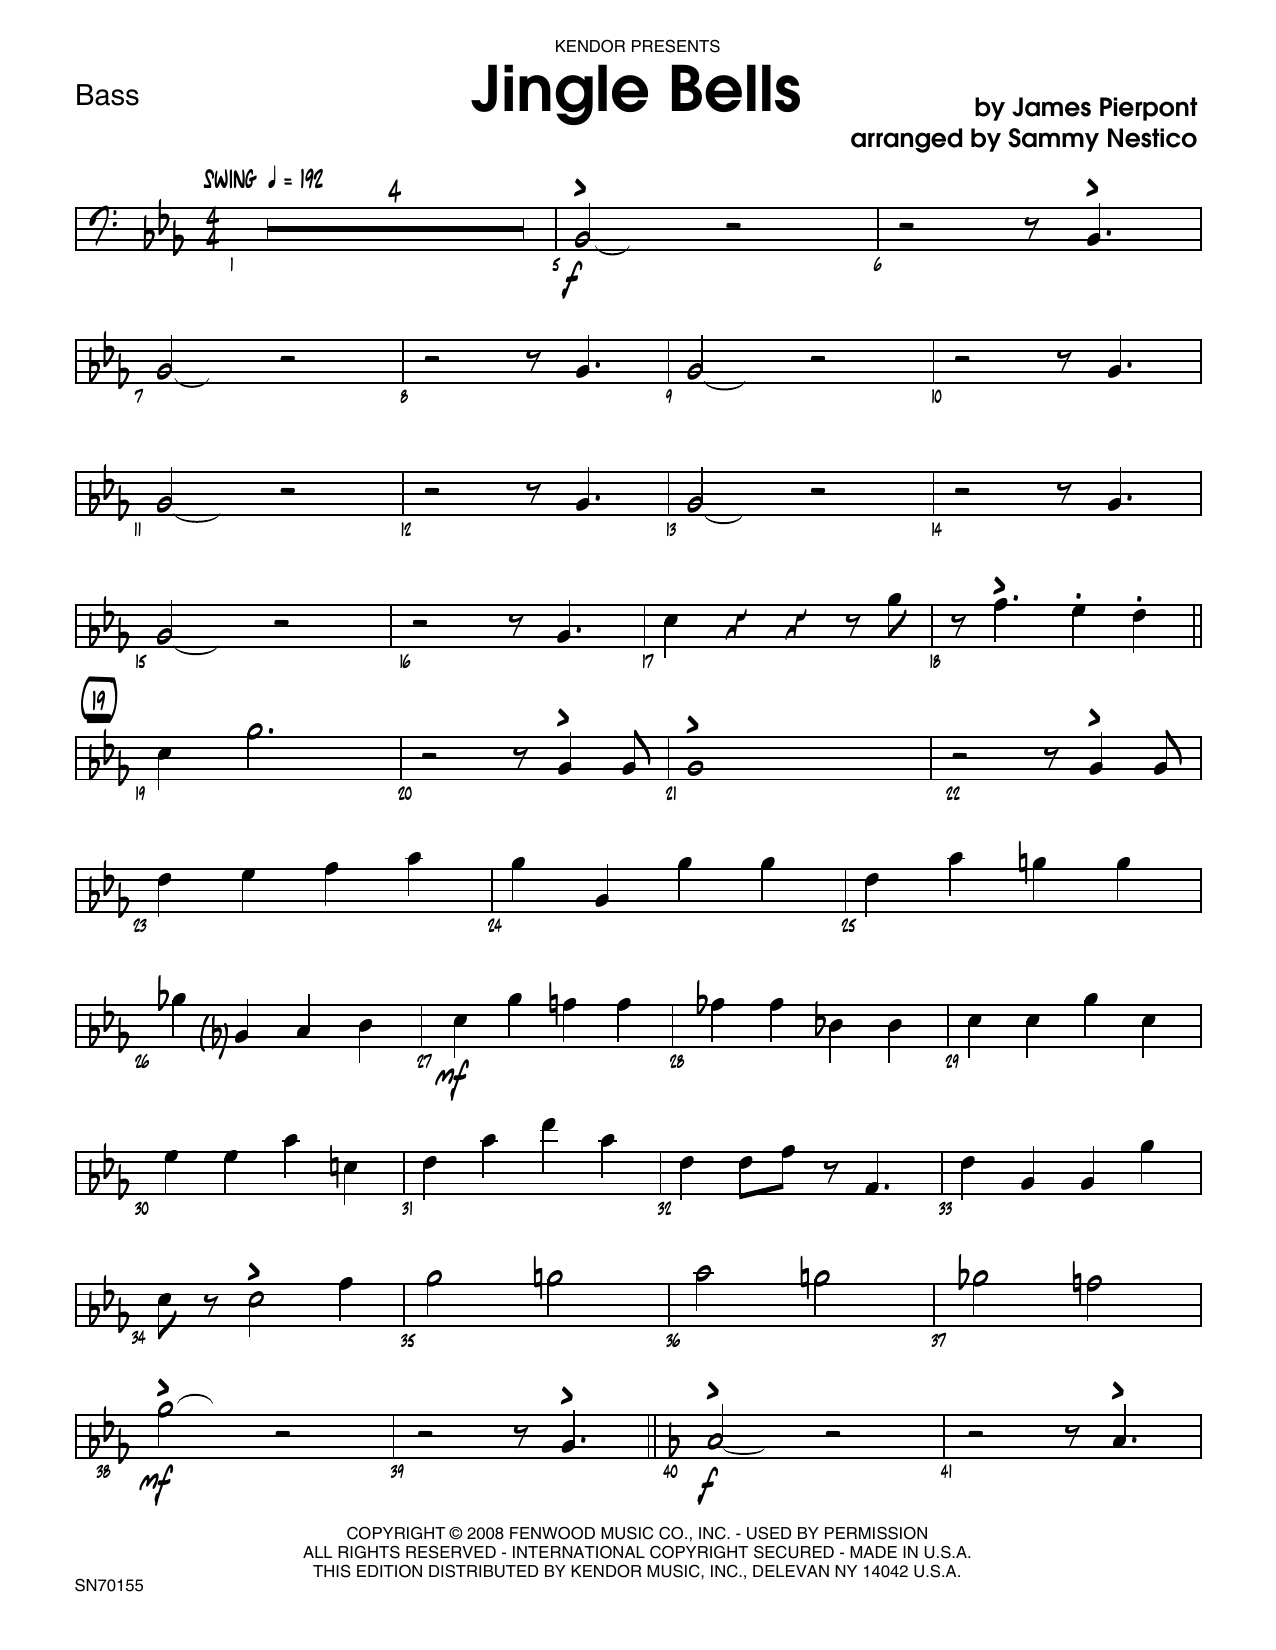 Jingle Bells - Bass Sheet Music